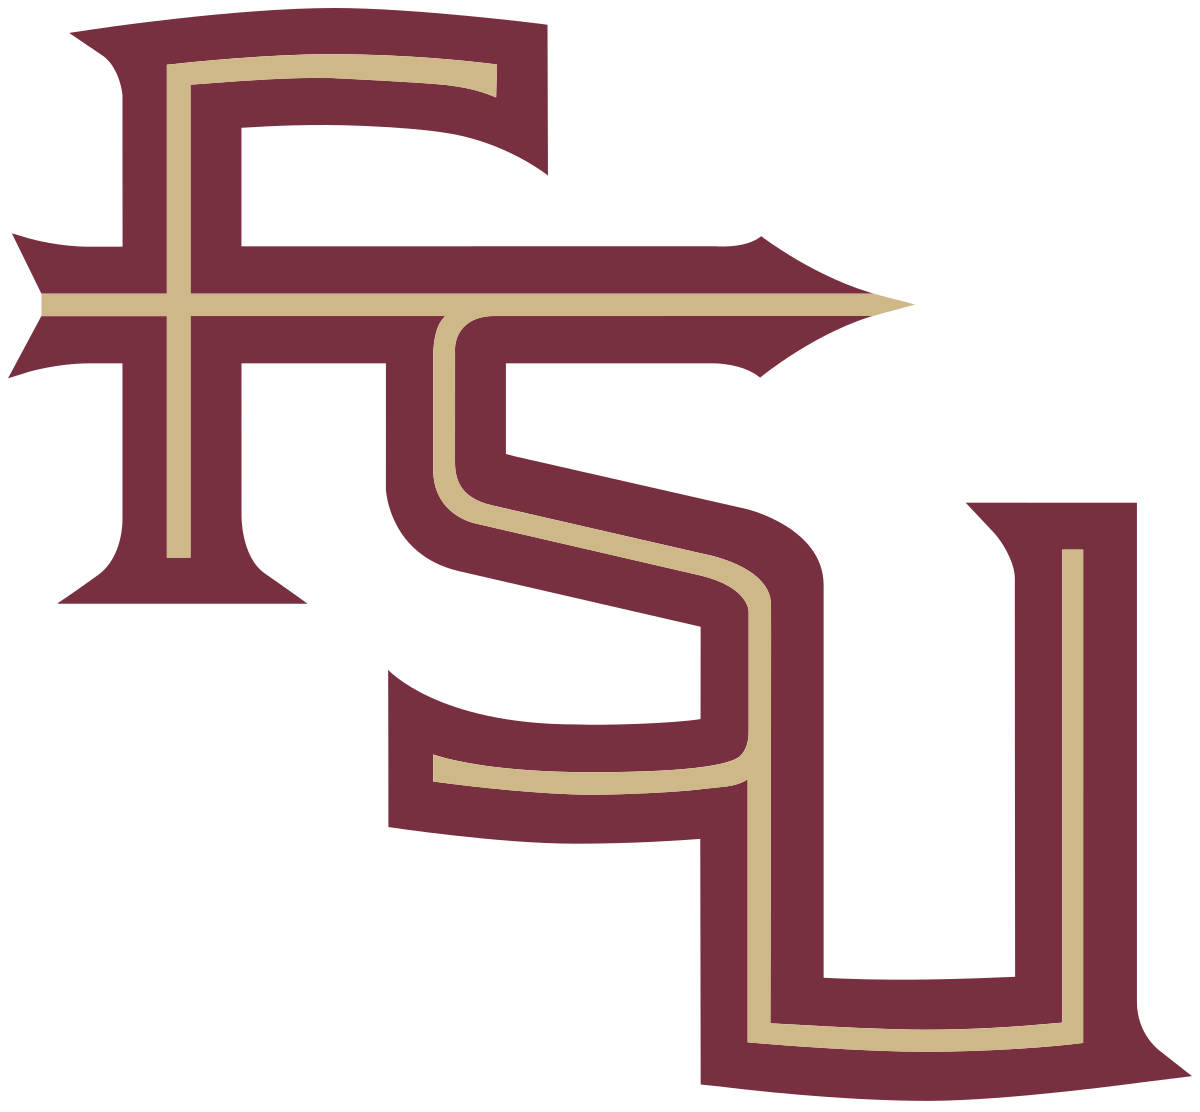 fsu svg black and white